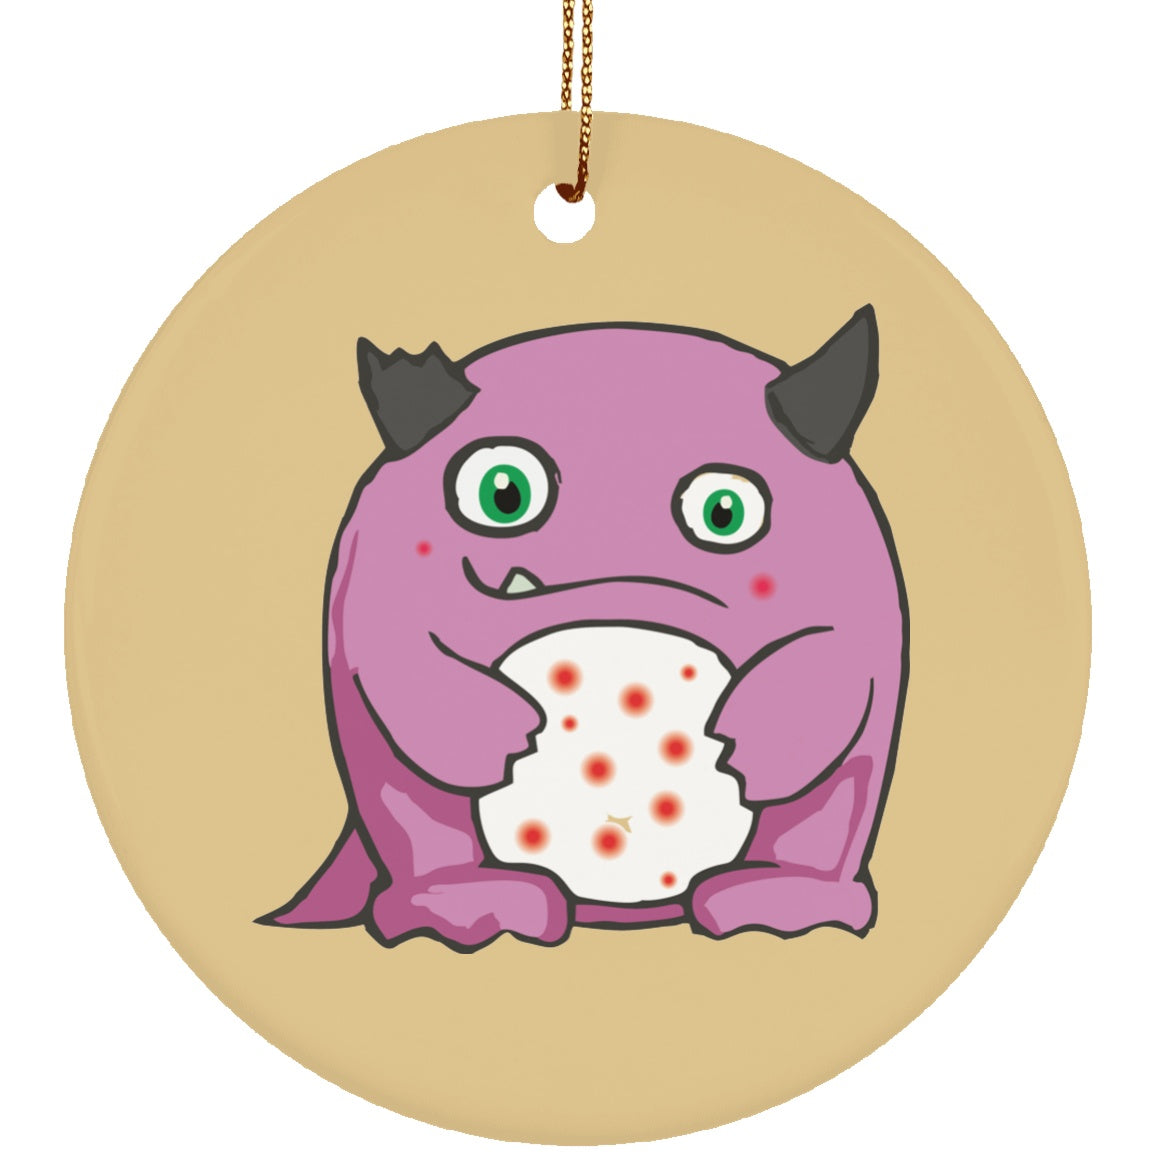 Lupus Monster Circle Ornament - The Unchargeables